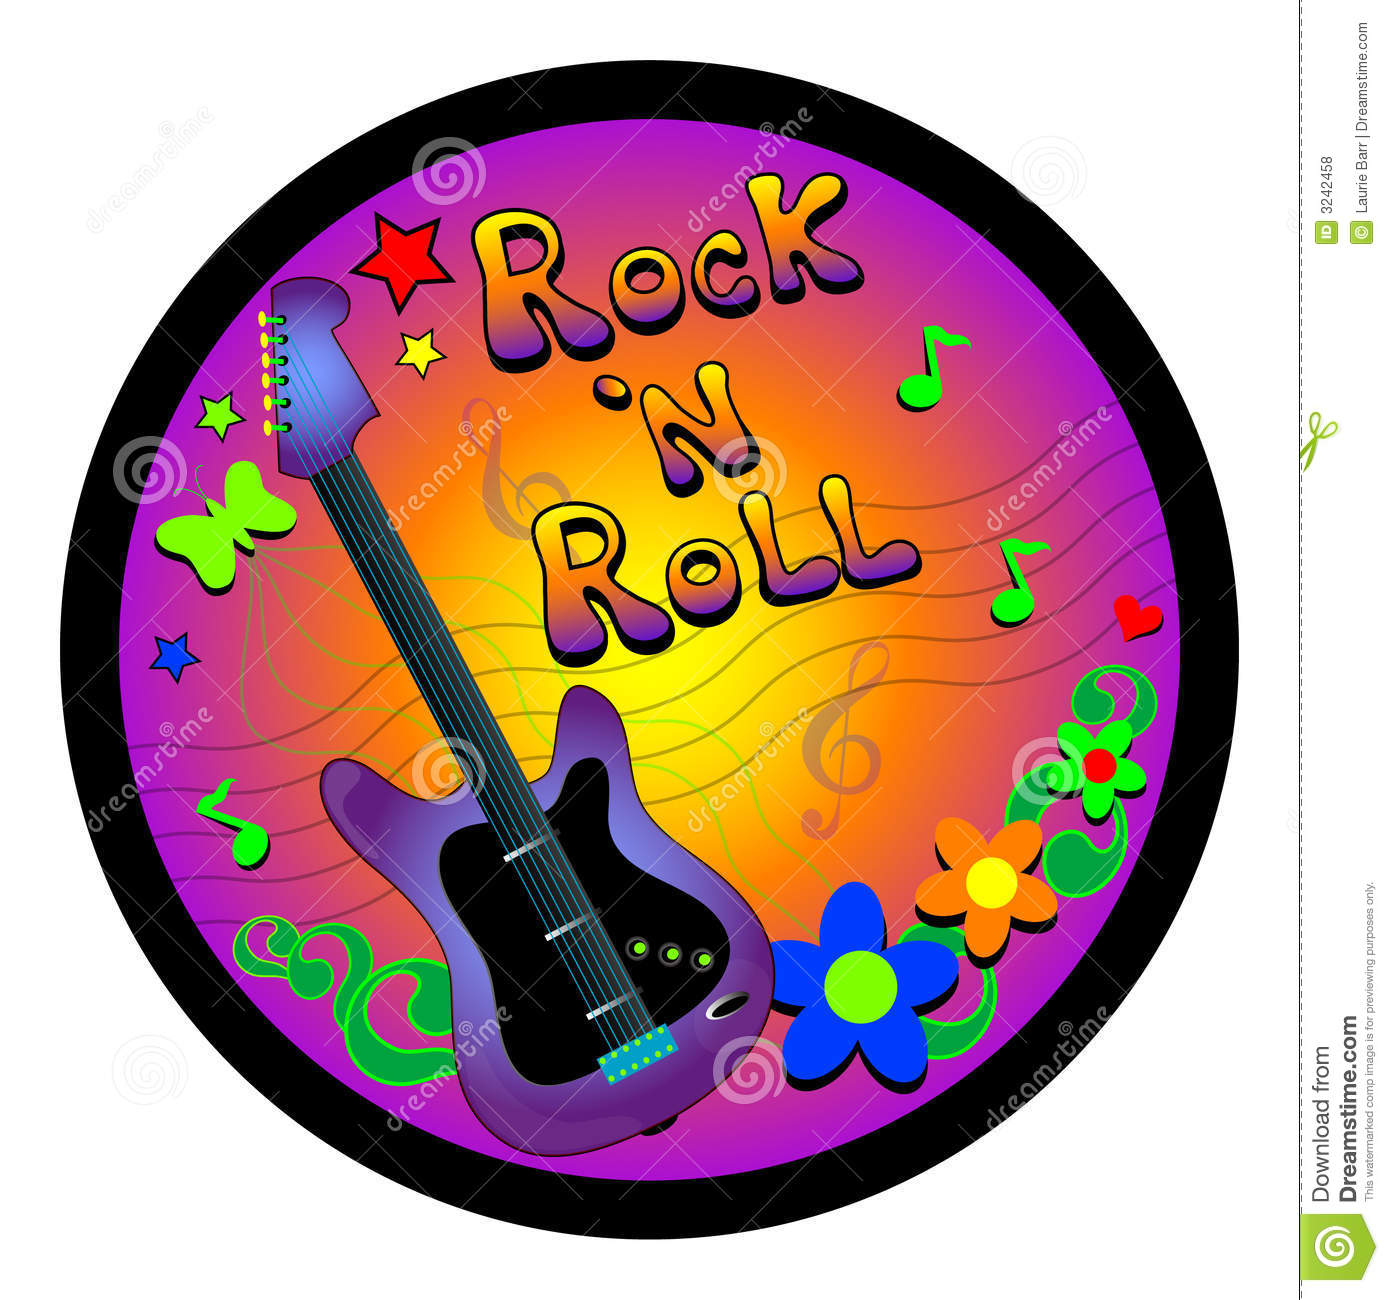 Rock And Roll Graphic Royalty Free Stock Photos - Image: 3242458